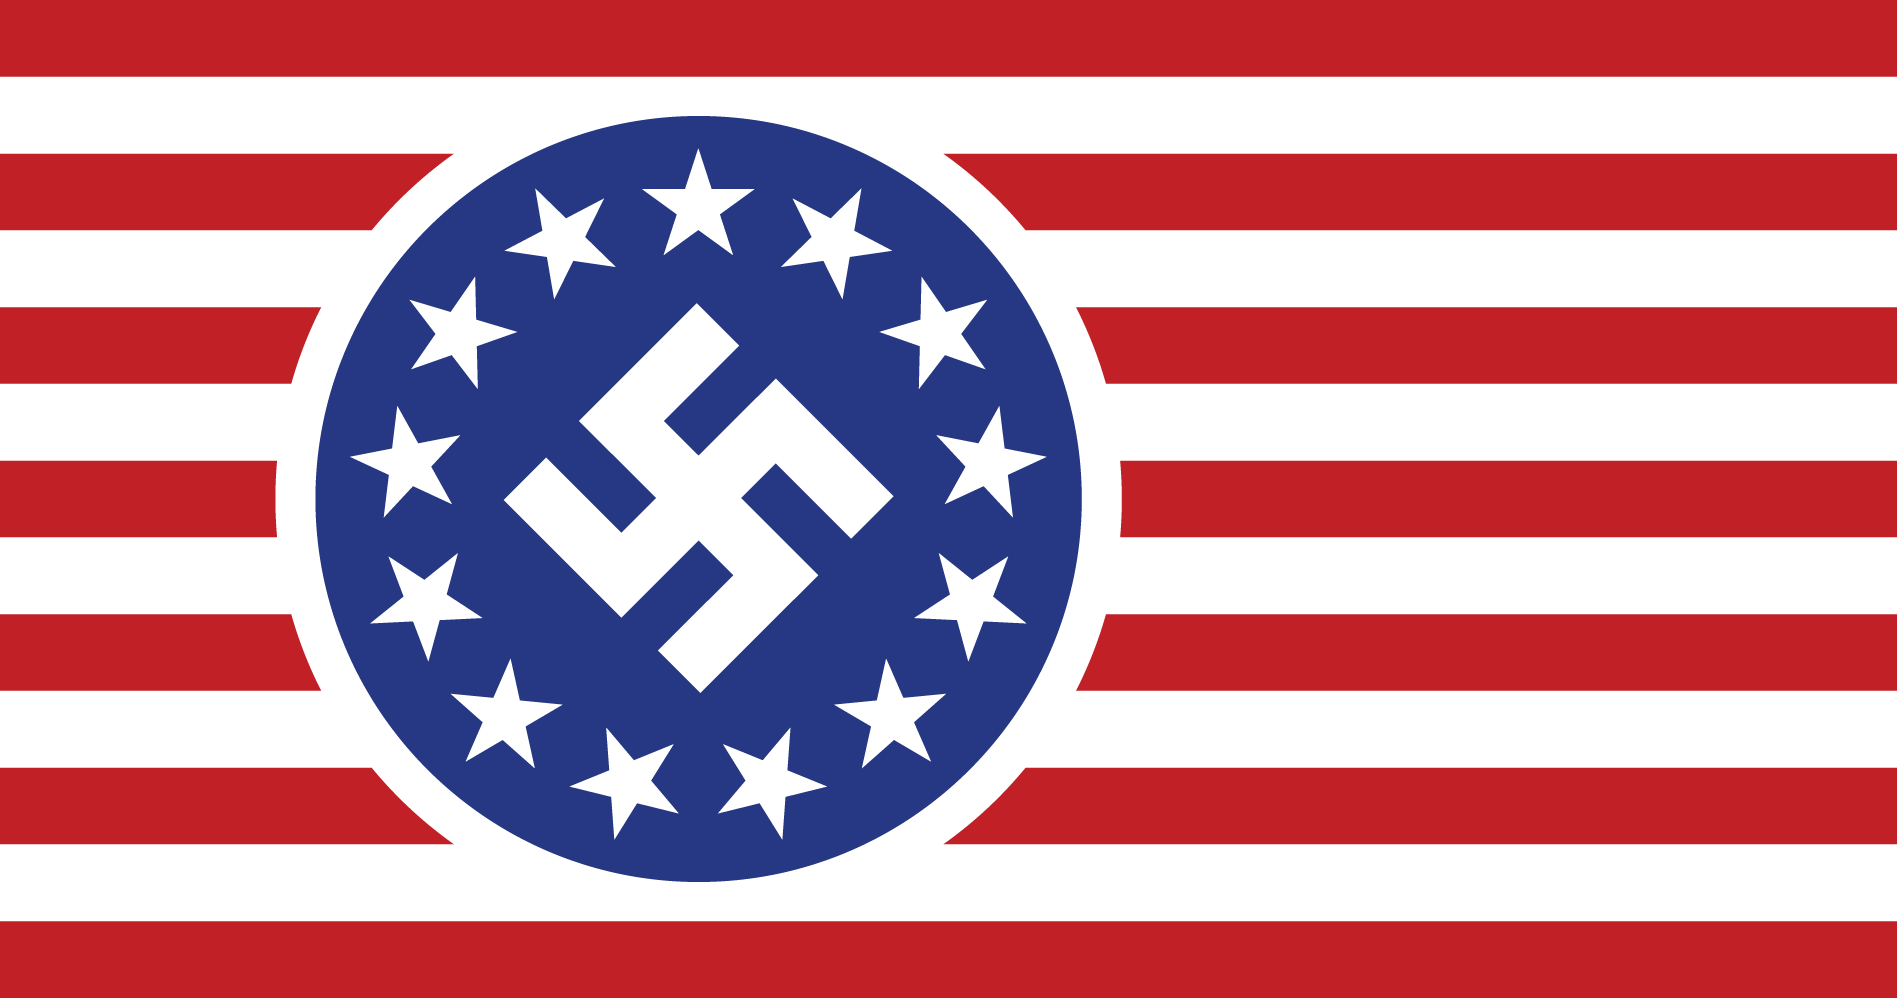 Flag of the New American Republic by RvBOMally on DeviantArt